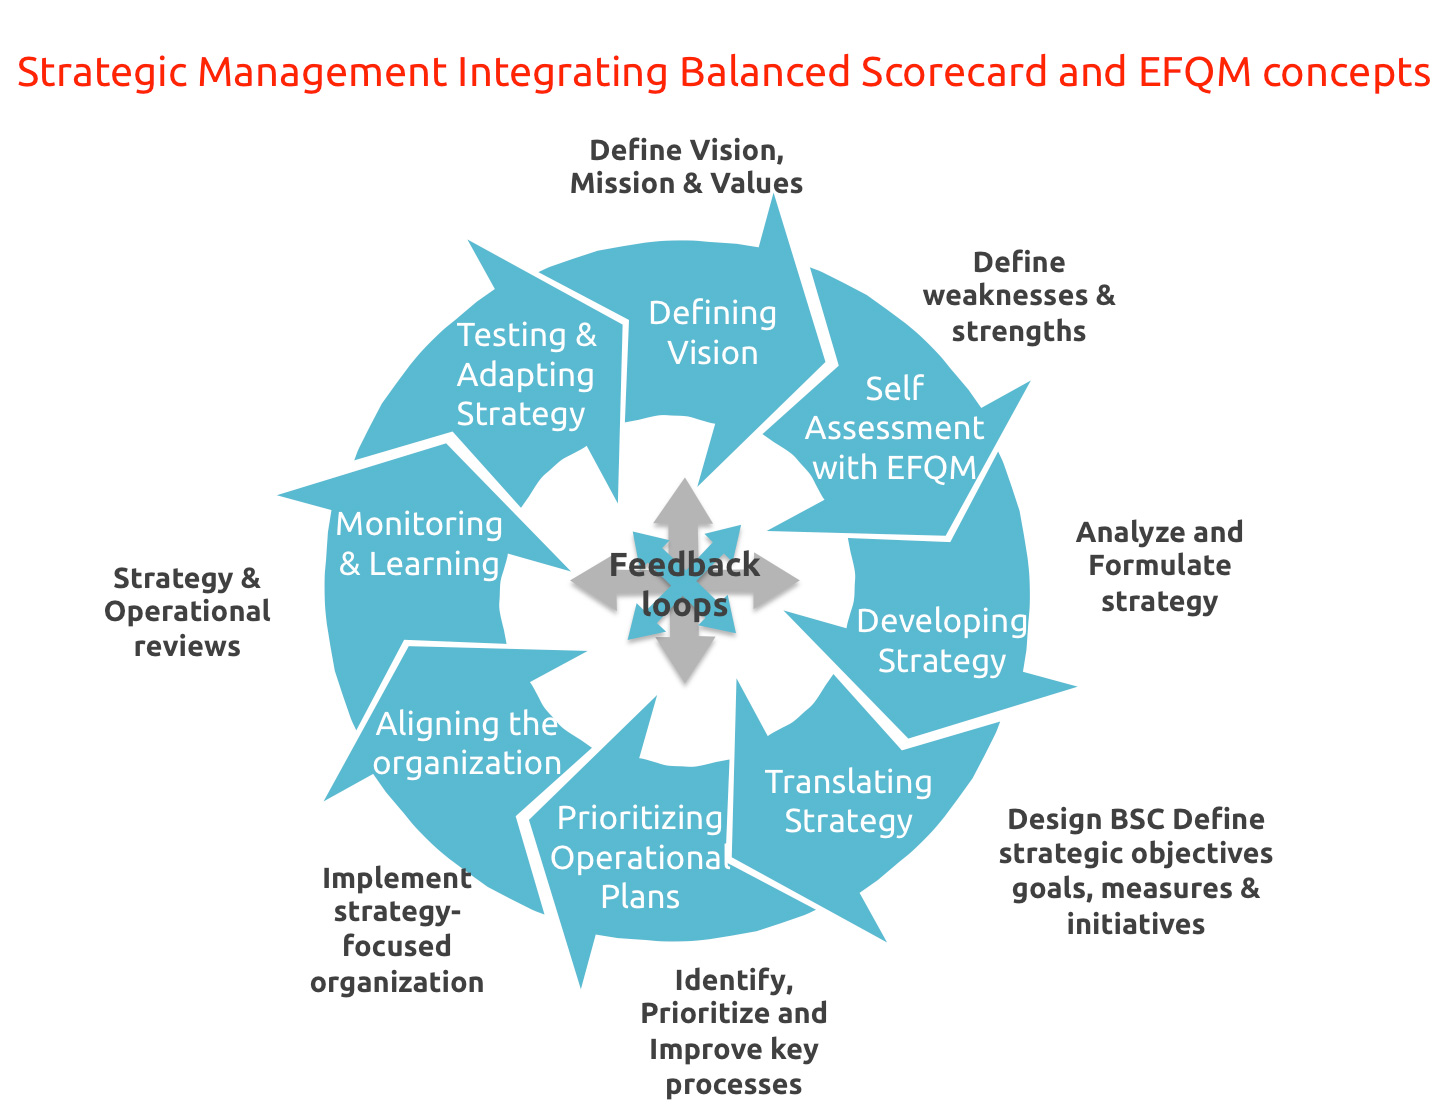 key benefits of balanced scorecard Deliver the objectives established as key to satisfying customers, which in turn satisfy shareholders for benefits that the balanced scorecard can provide.